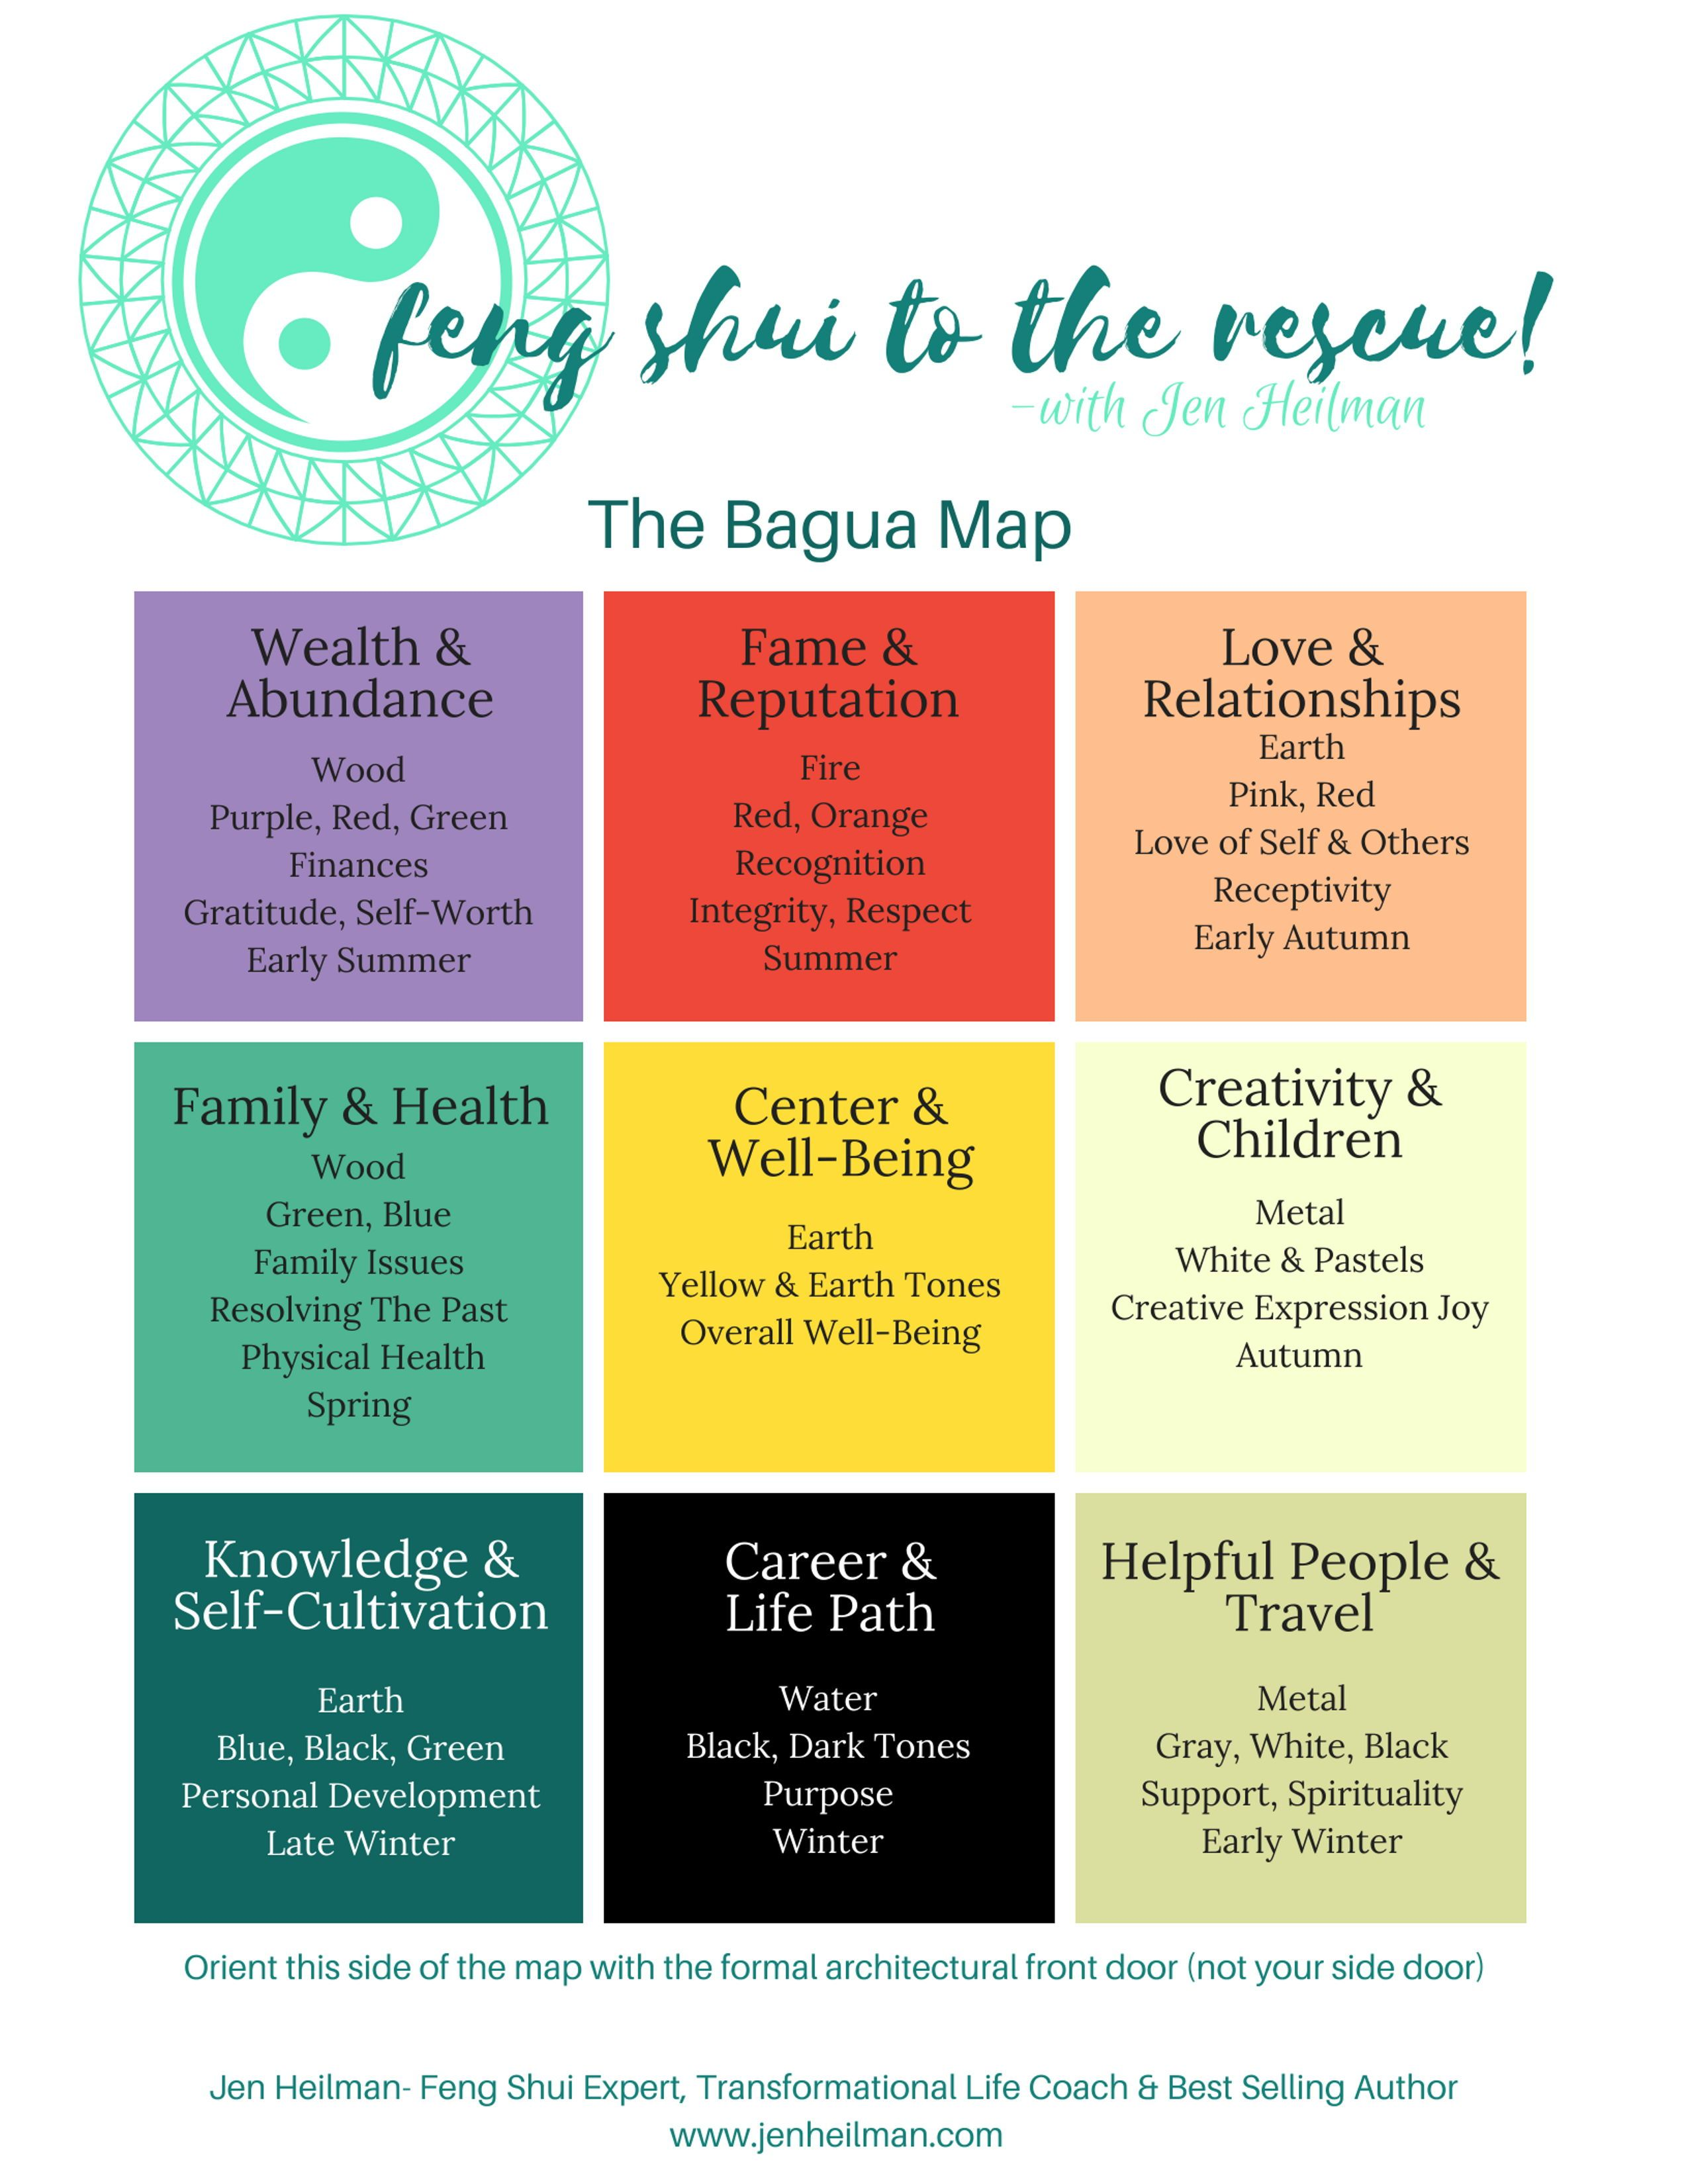 Feng Shui Bagua Vision Board Feng Shui To The Rescue The Feng Shui Secret Weapon The